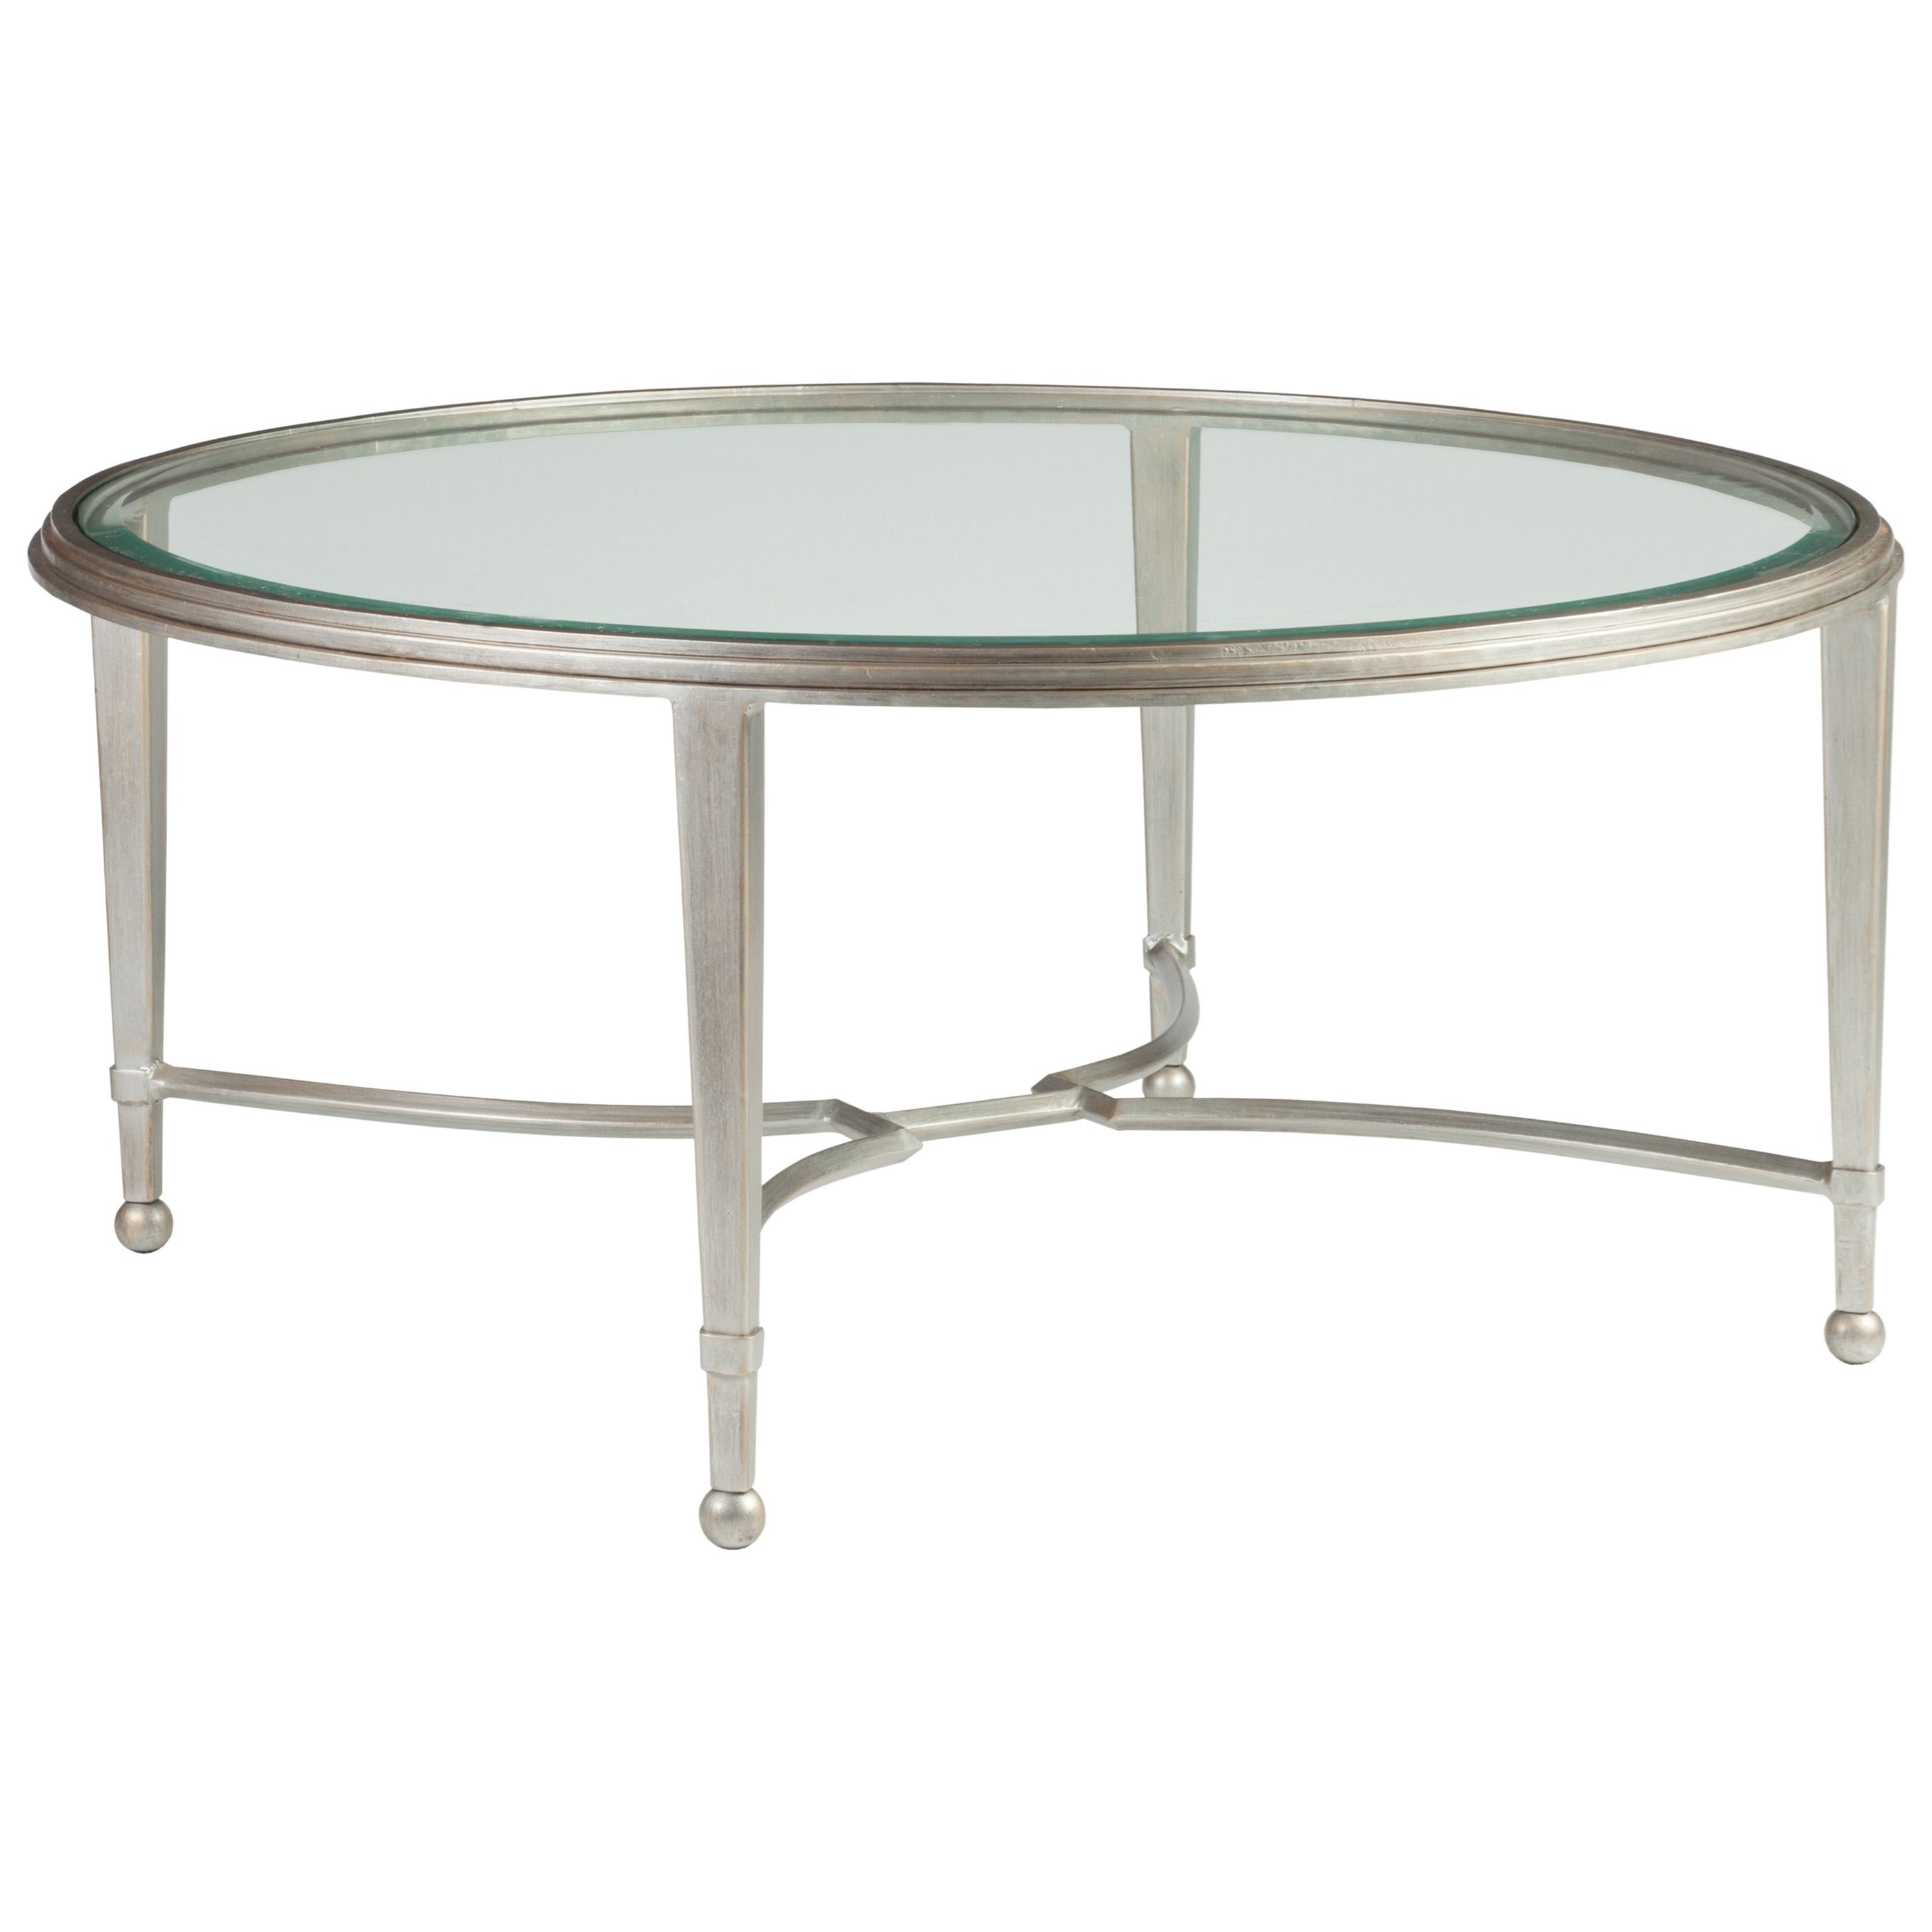 Metal Designs Sangiovese Round Cocktail Table by Artistica at Sprintz Furniture